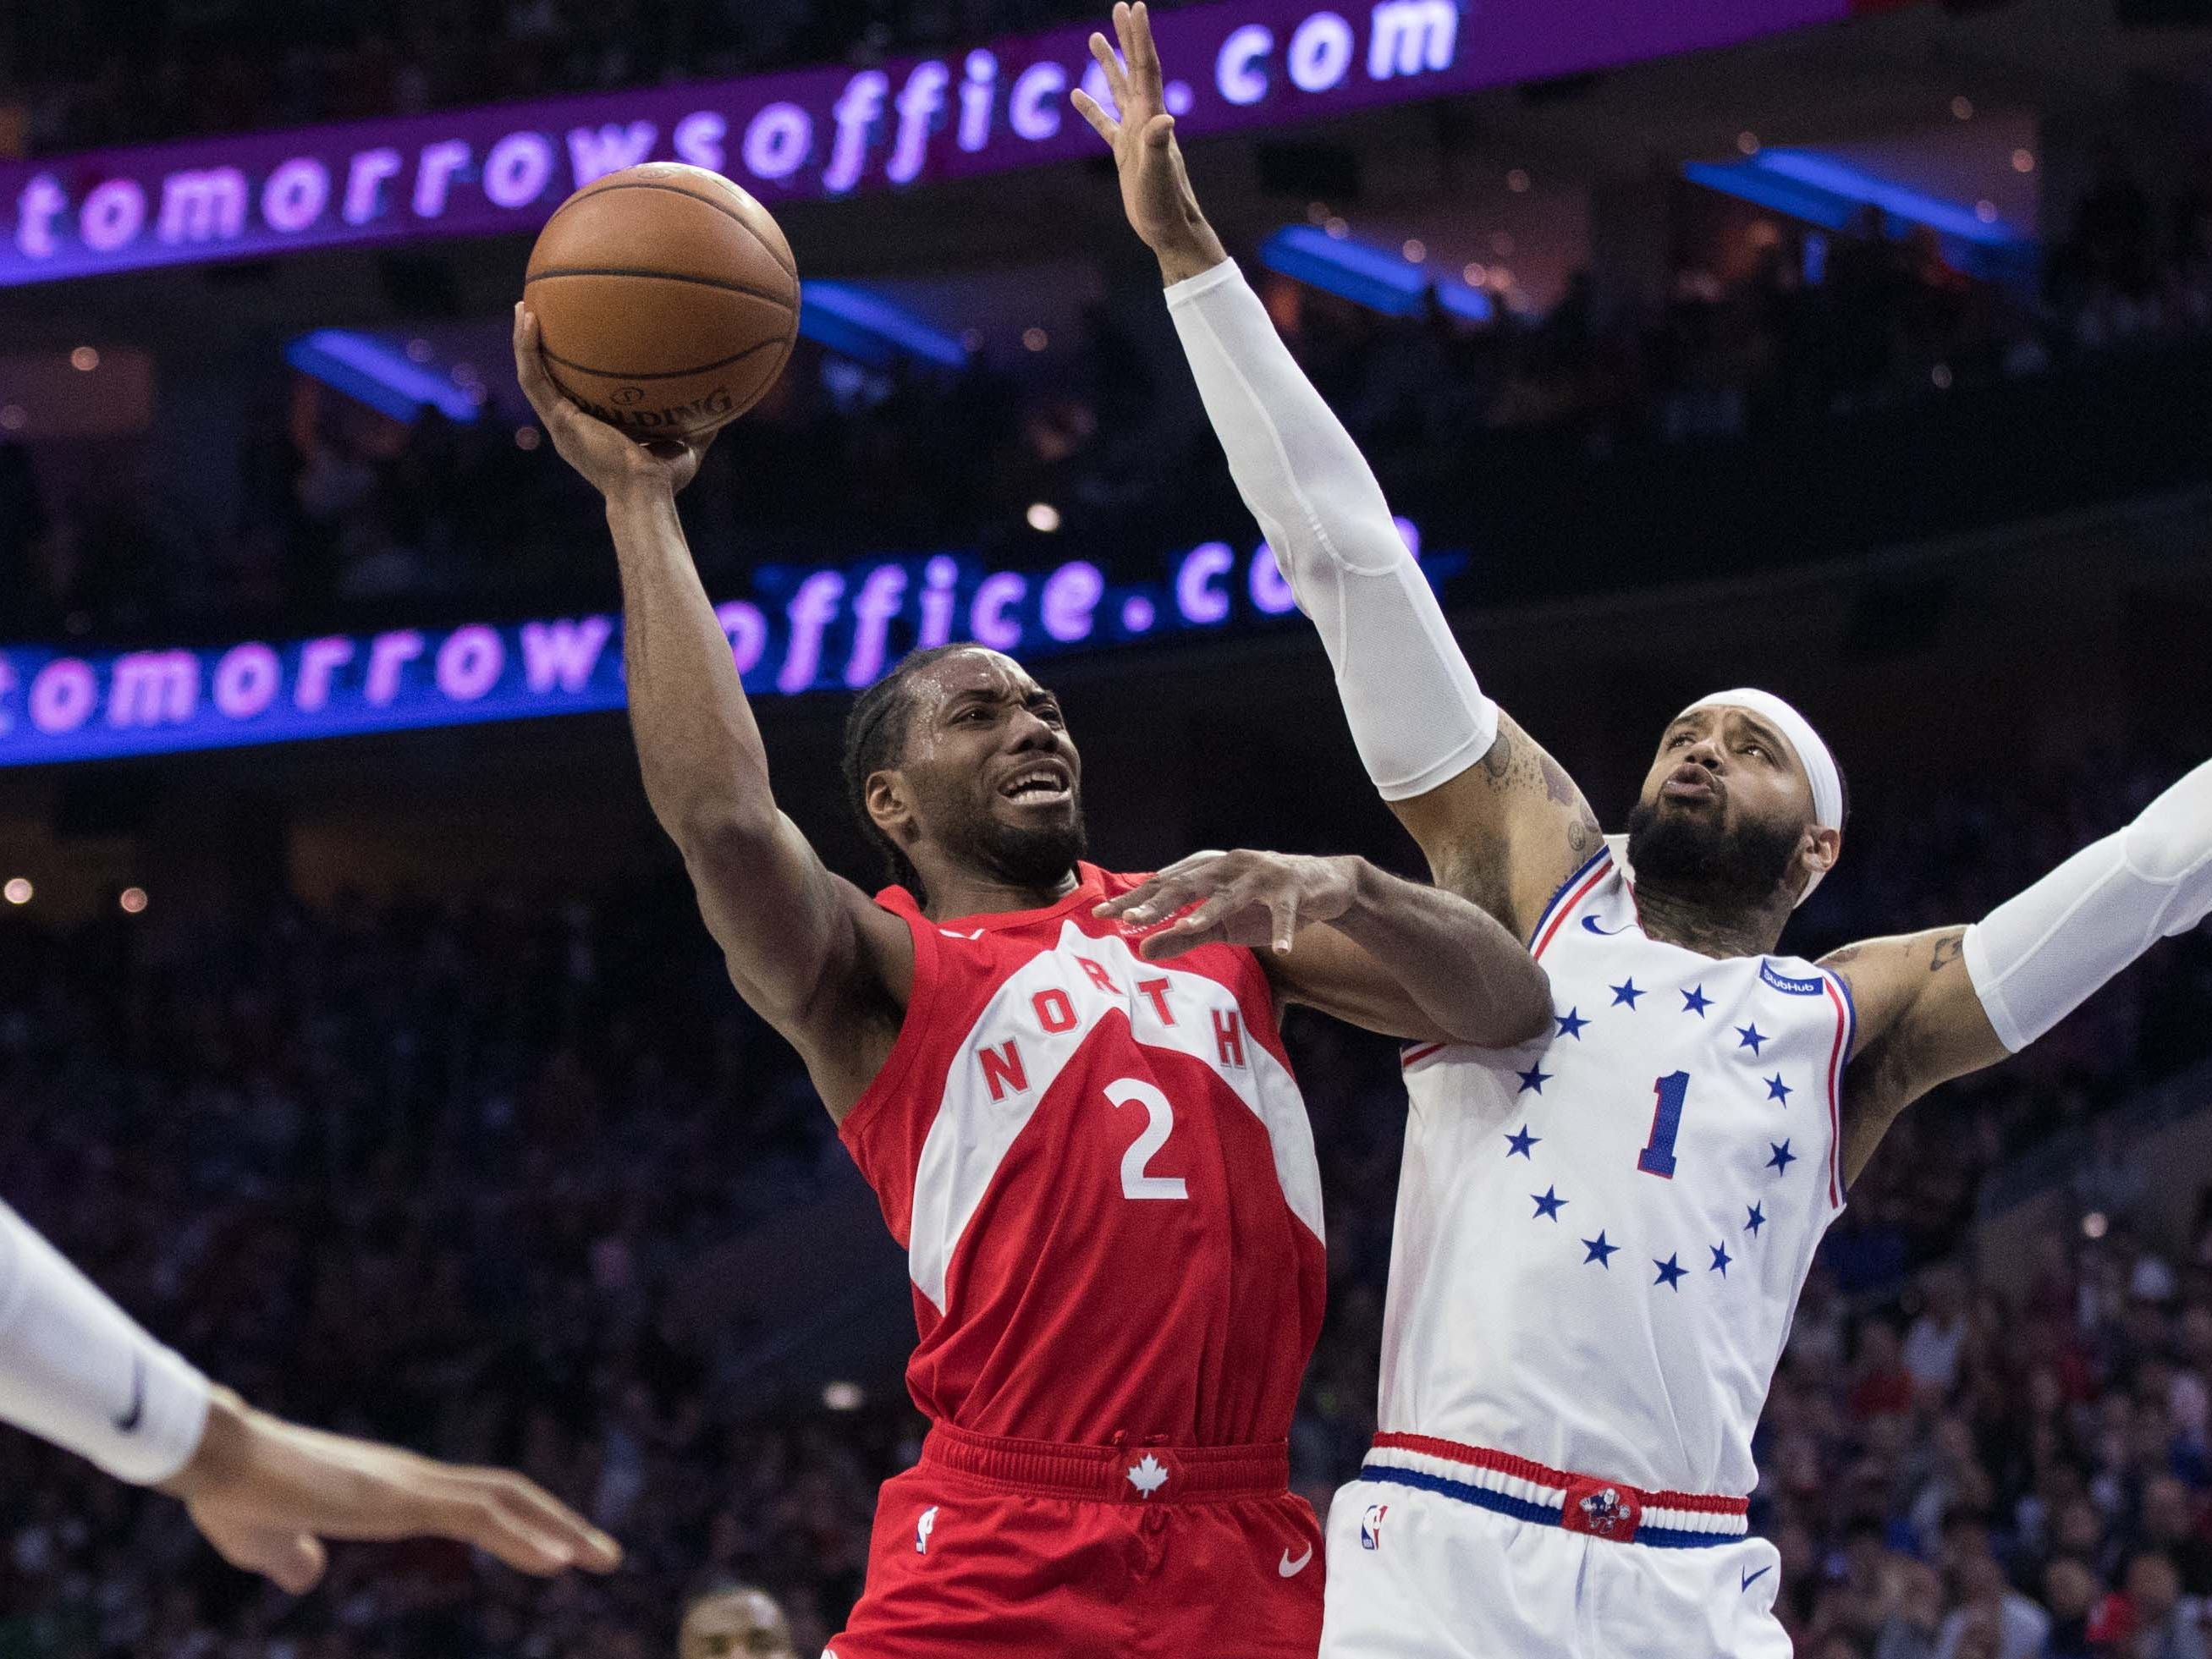 May 5: Raptors forward Kawhi Leonard (2) drives to the bucket against 76ers defender Mike Scott (1) during Game 4 in Philadelphia.